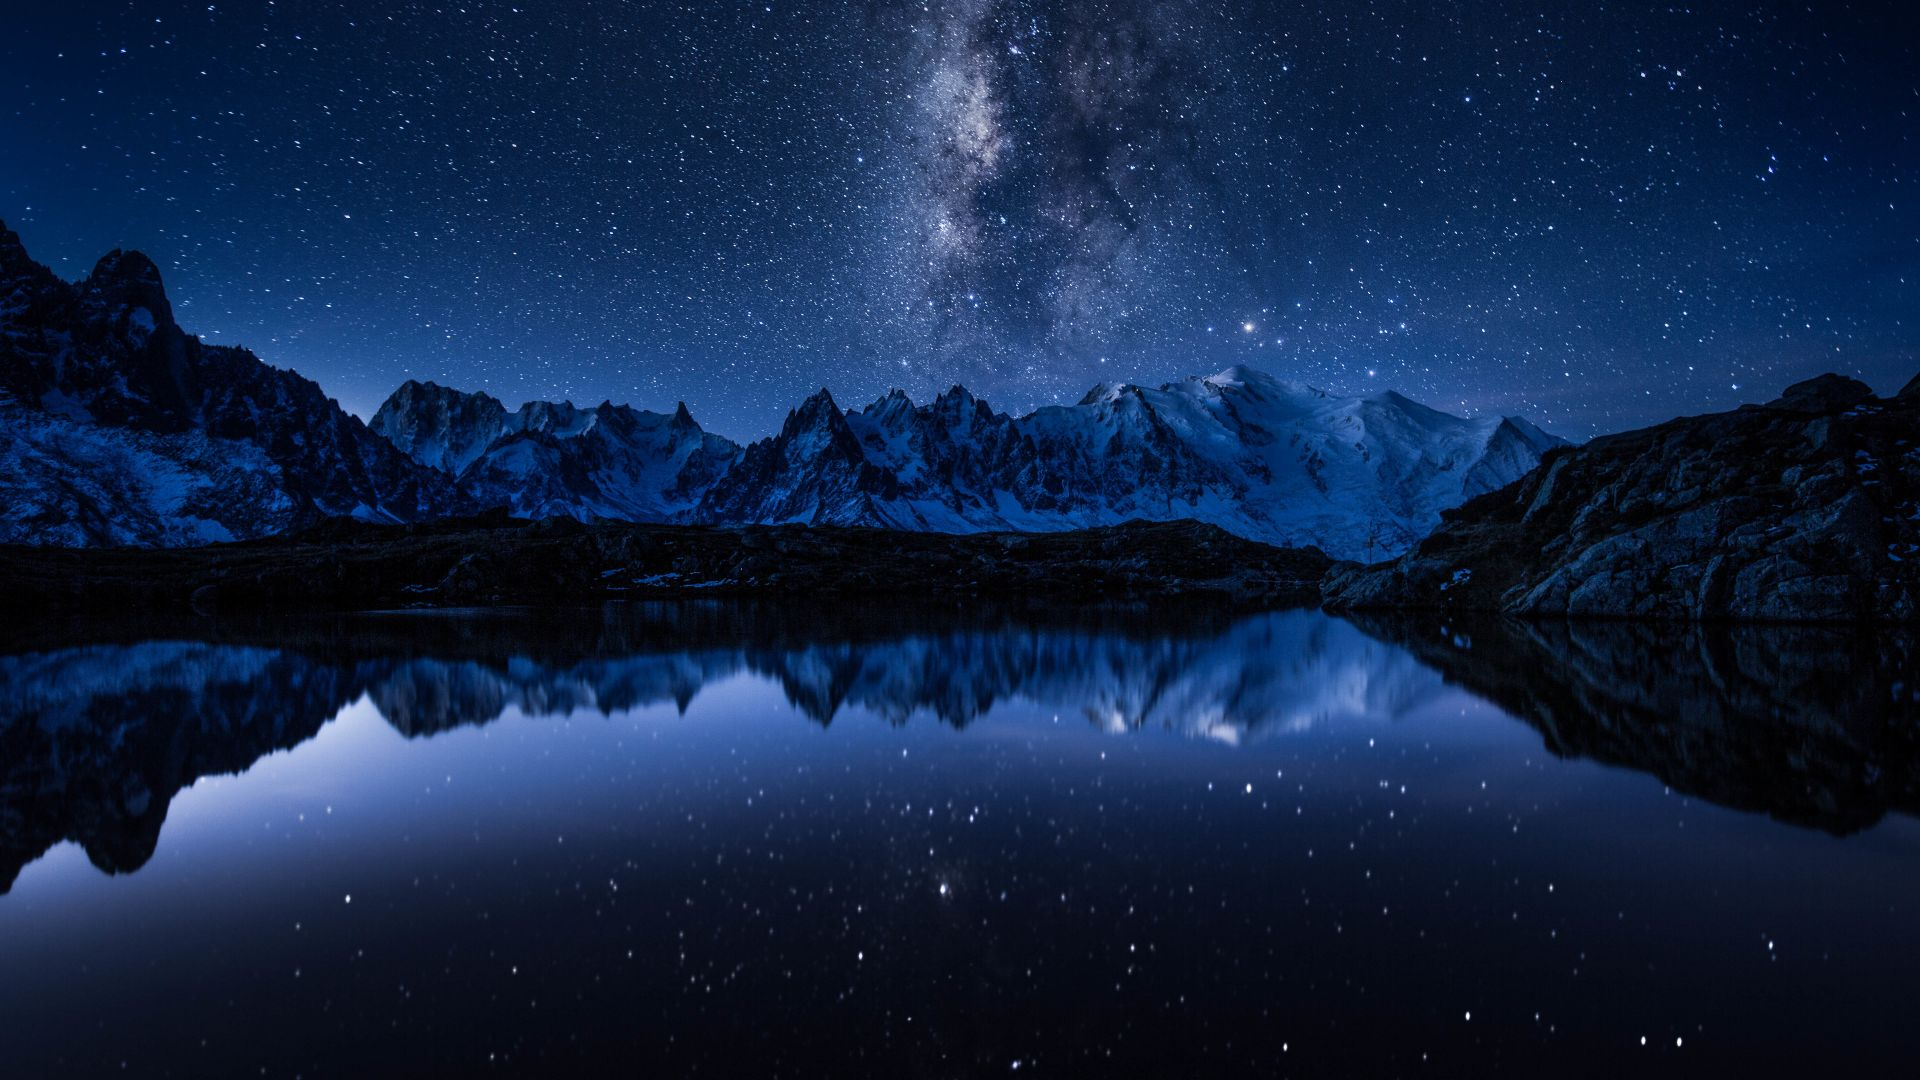 stars, mountains, lake, 5k (horizontal)